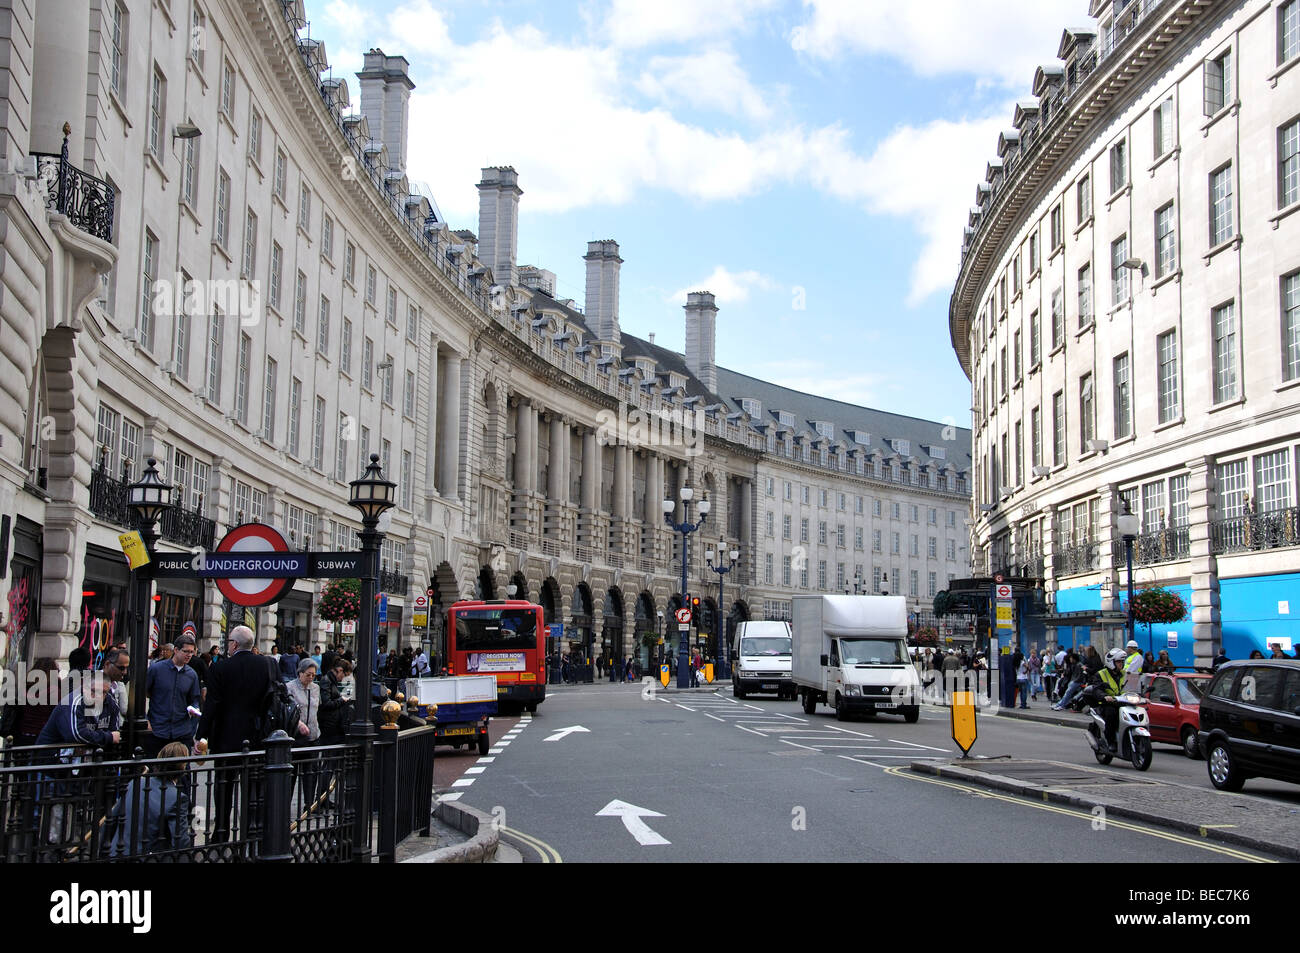 In what city is Piccadilly Street